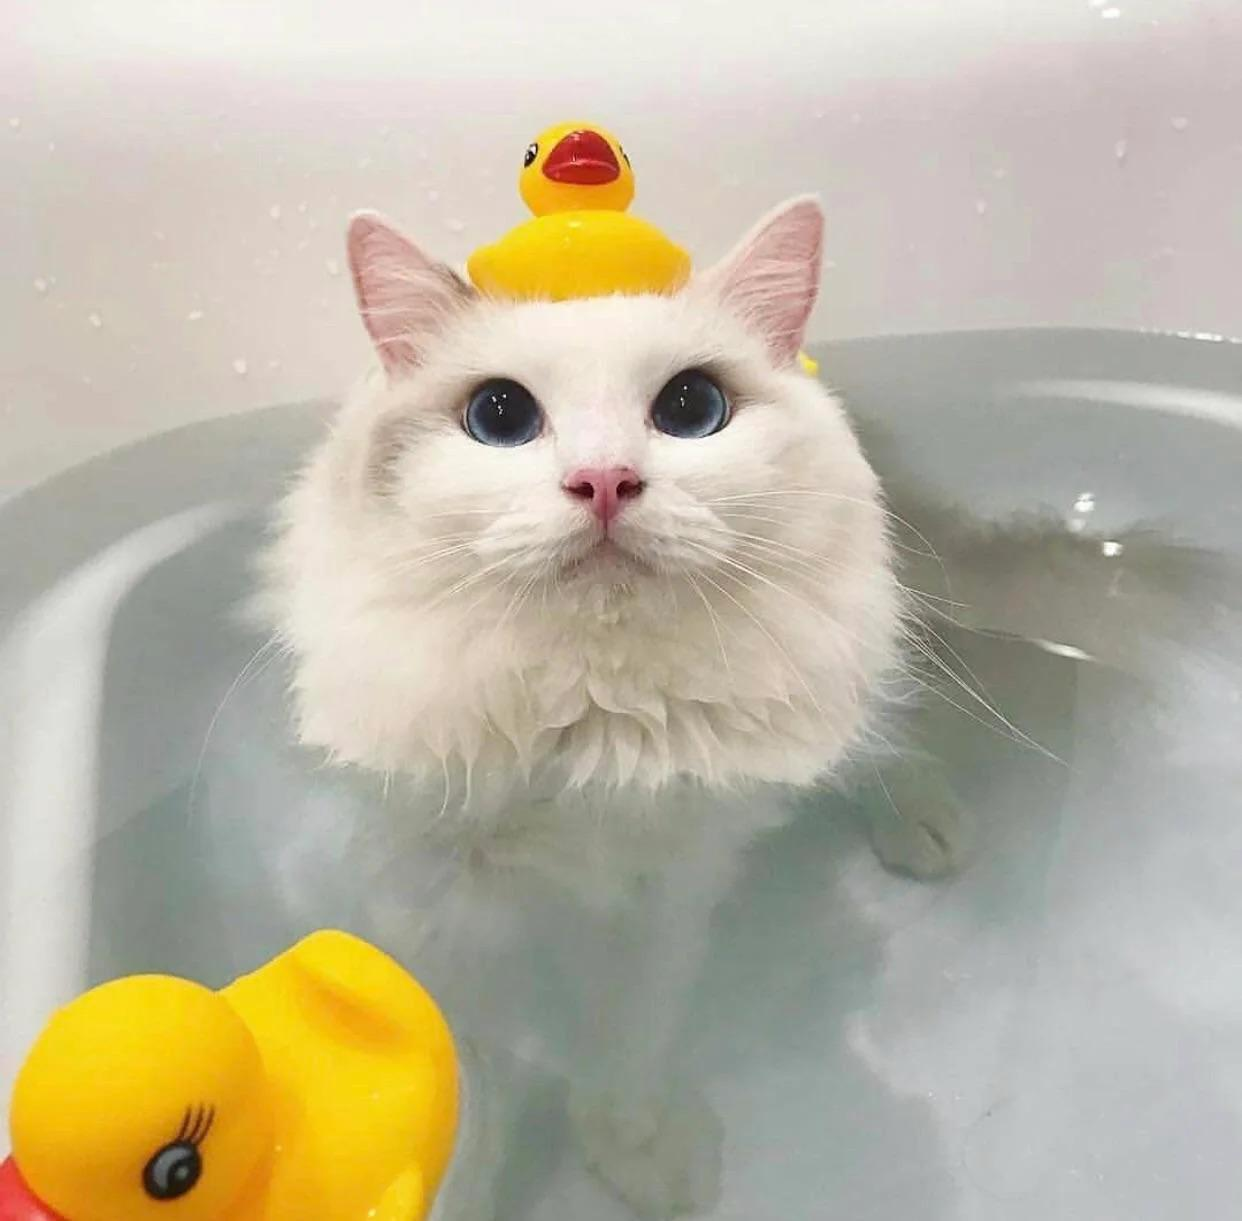 Apparently not all cats hate bath time! xd